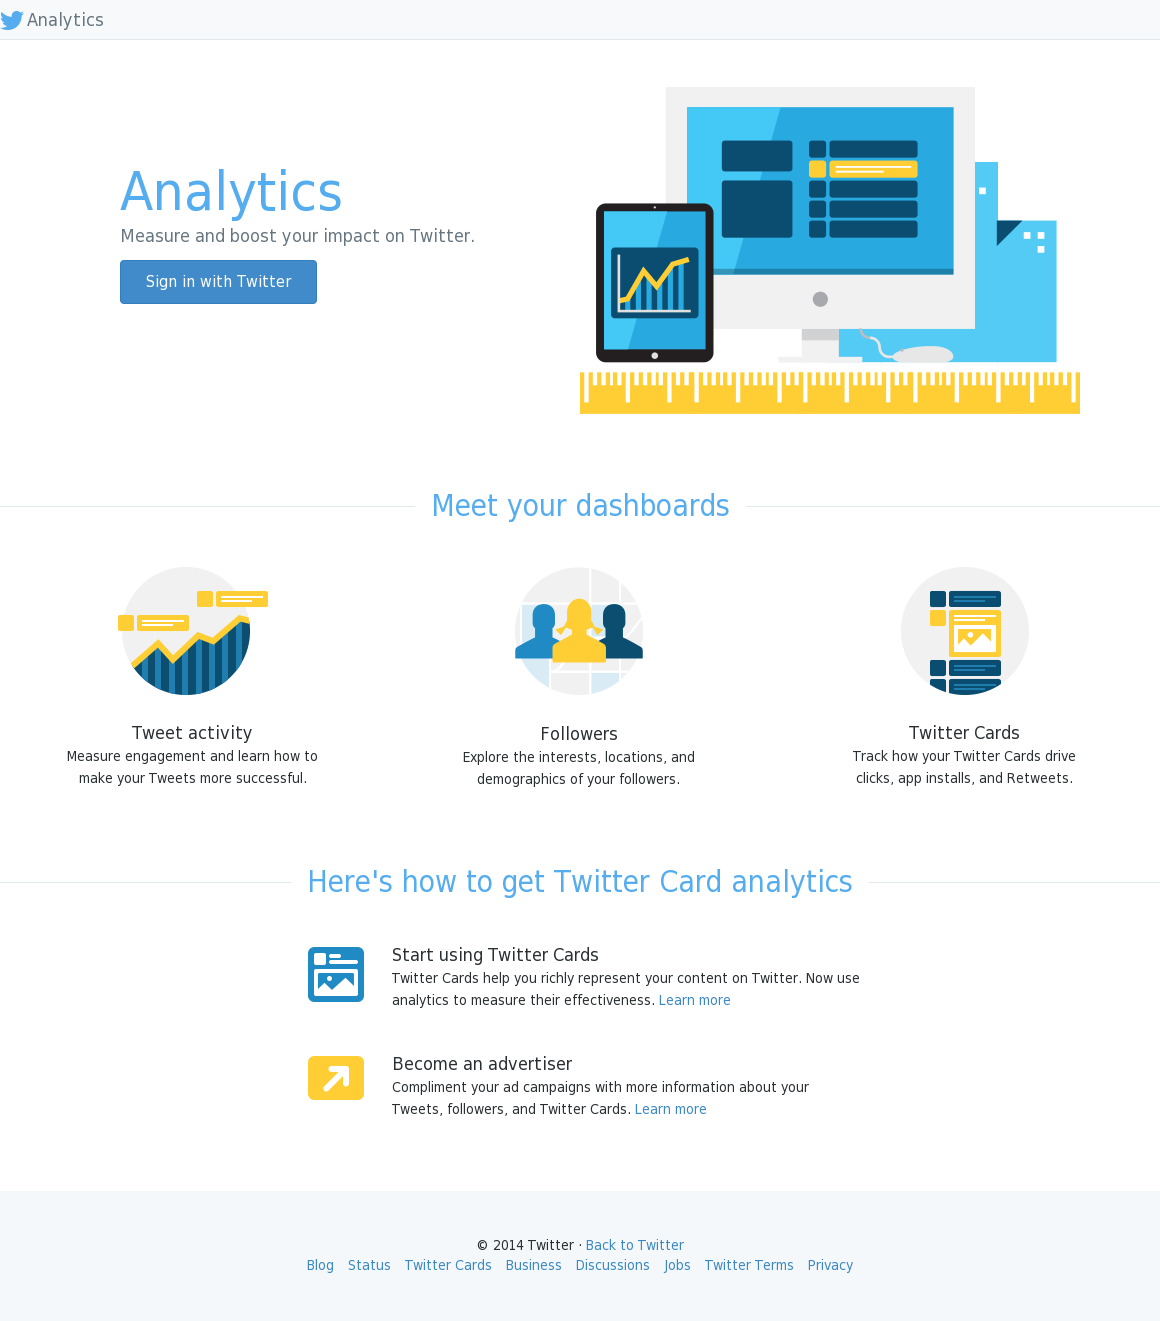 twitter analysis Data-driven social just got simpler sprout social's acquisition of simply measured brings elegant data storytelling together with robust analytics through an unparalleled suite of solutions for data-driven social management, comprehensive measurement and deep social listening so you can learn, optimize and outperform.